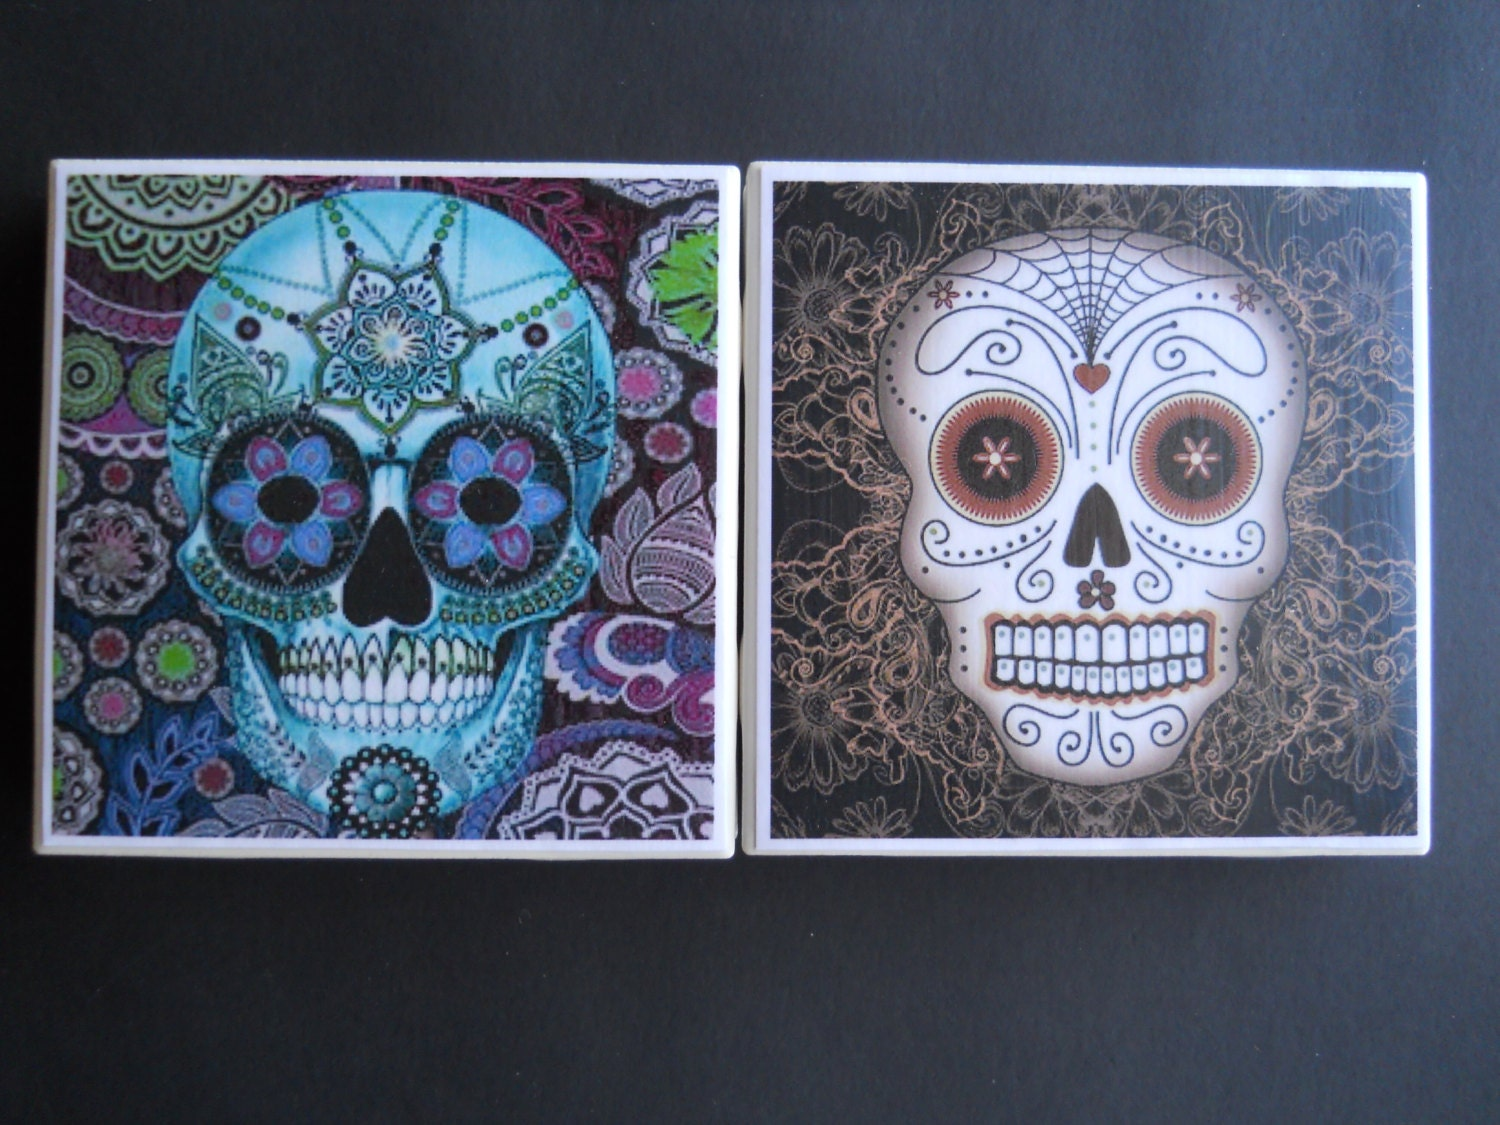 Sugar skulls day of the dead ceramic tile coasters skull sugar skulls day of the dead ceramic tile coasters skull coasters drink dailygadgetfo Choice Image